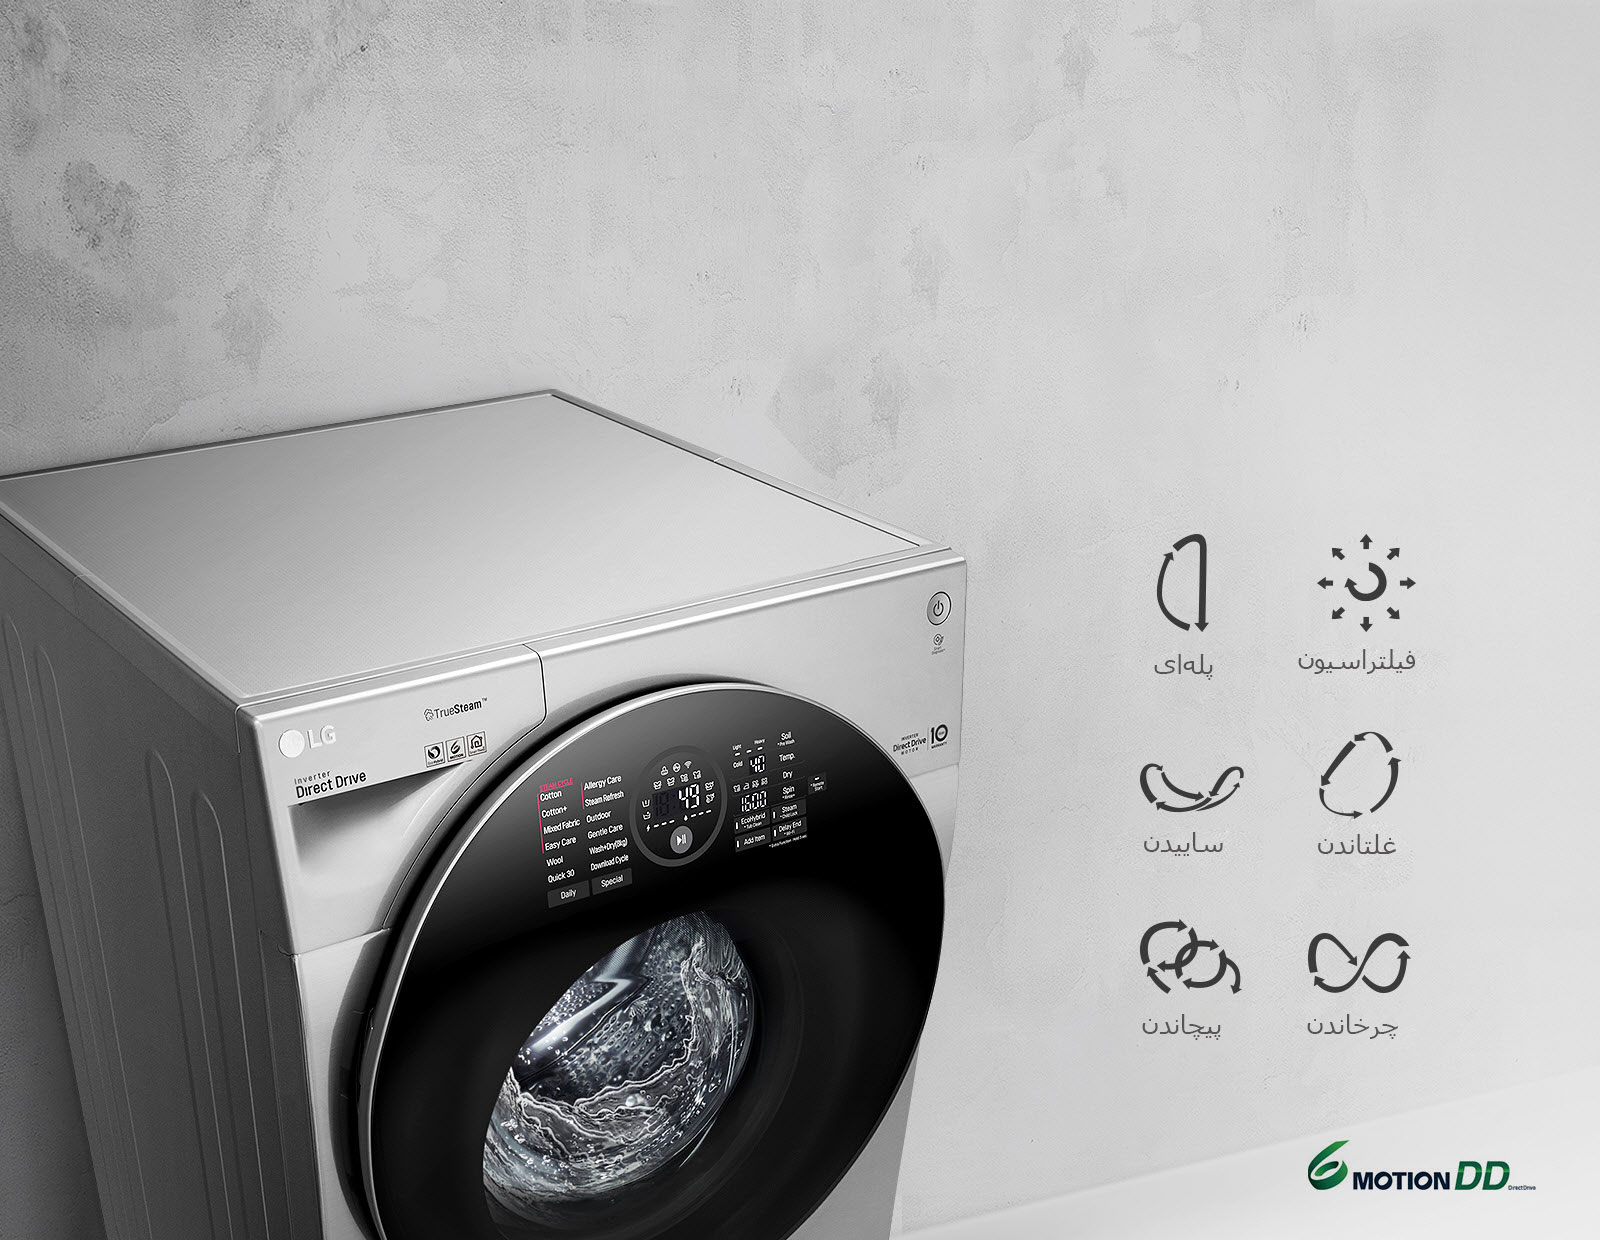 Global_TWINWash24_Gplus_Washer&Dryer_VCM_2018_Feature_08_6MotionDD_D_6